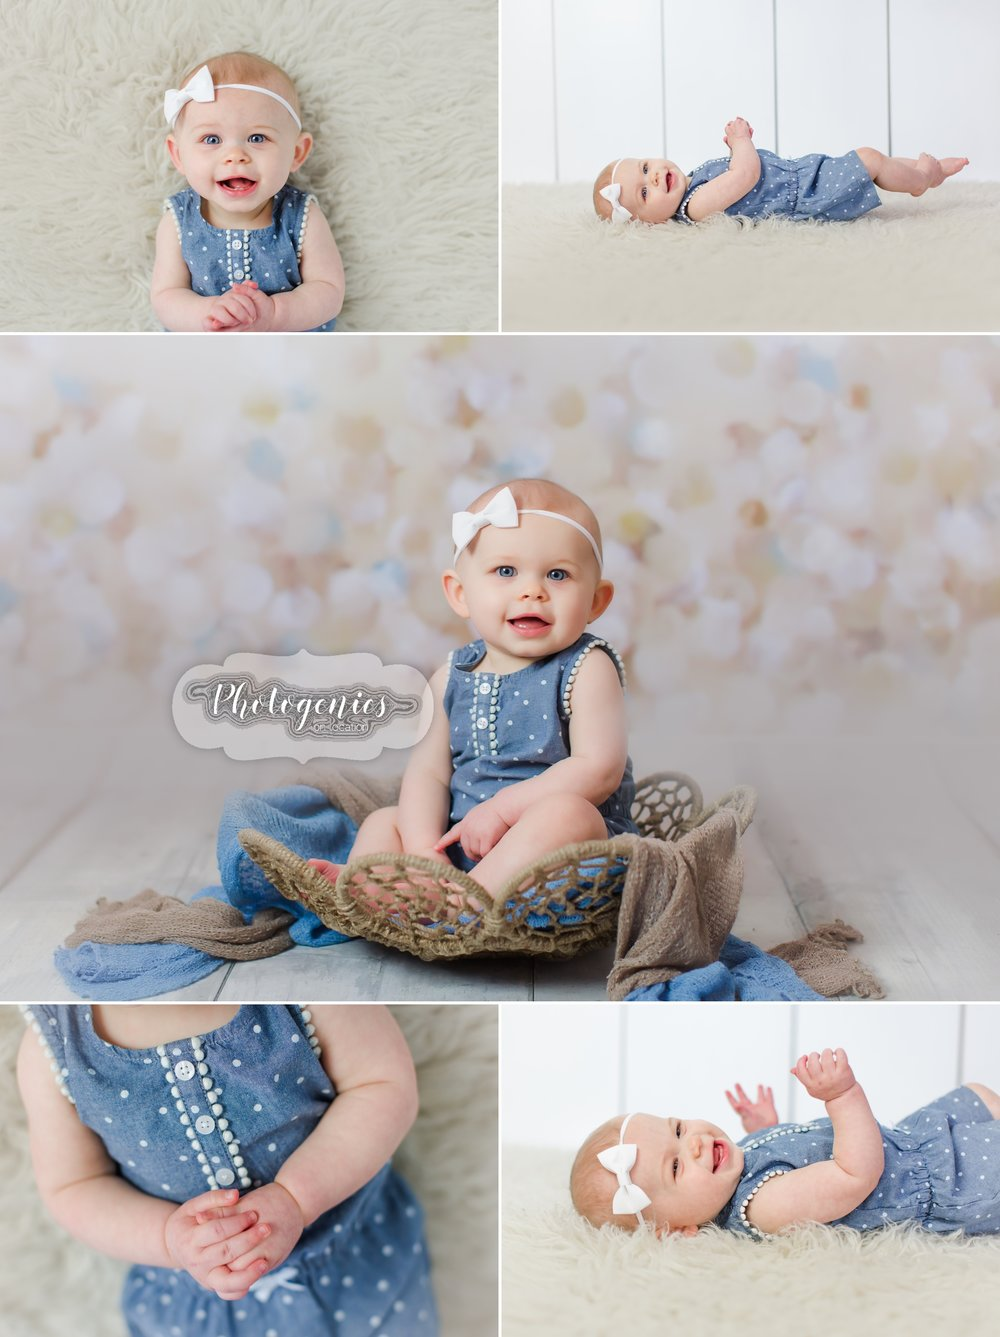 sitting_up_baby_girl_photography_ideas_love_pictures_milestone_flowers_blue_girl_outfit_prop_basket